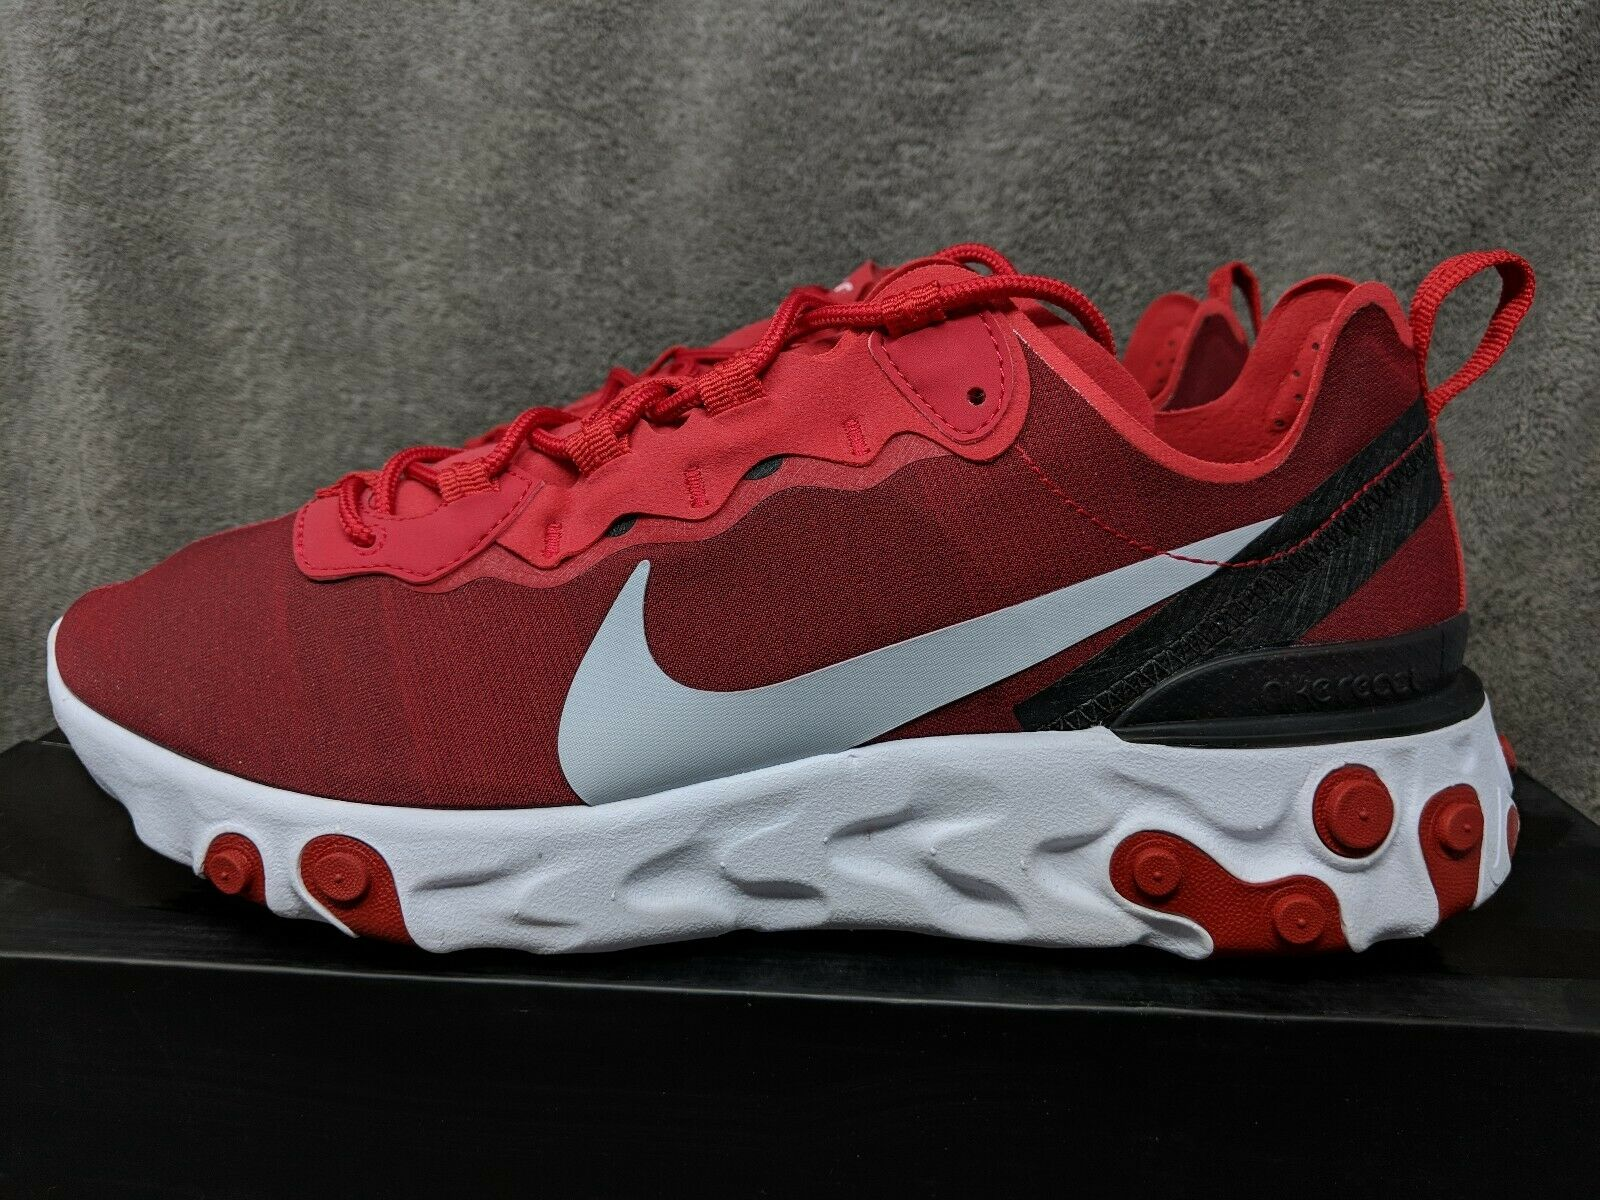 4effd8a1f9 Nike React Element 55 14 Gym Red White Black Wolf NEW Men's  Grey(BQ6166-601) nzvgkh23-Athletic Shoes